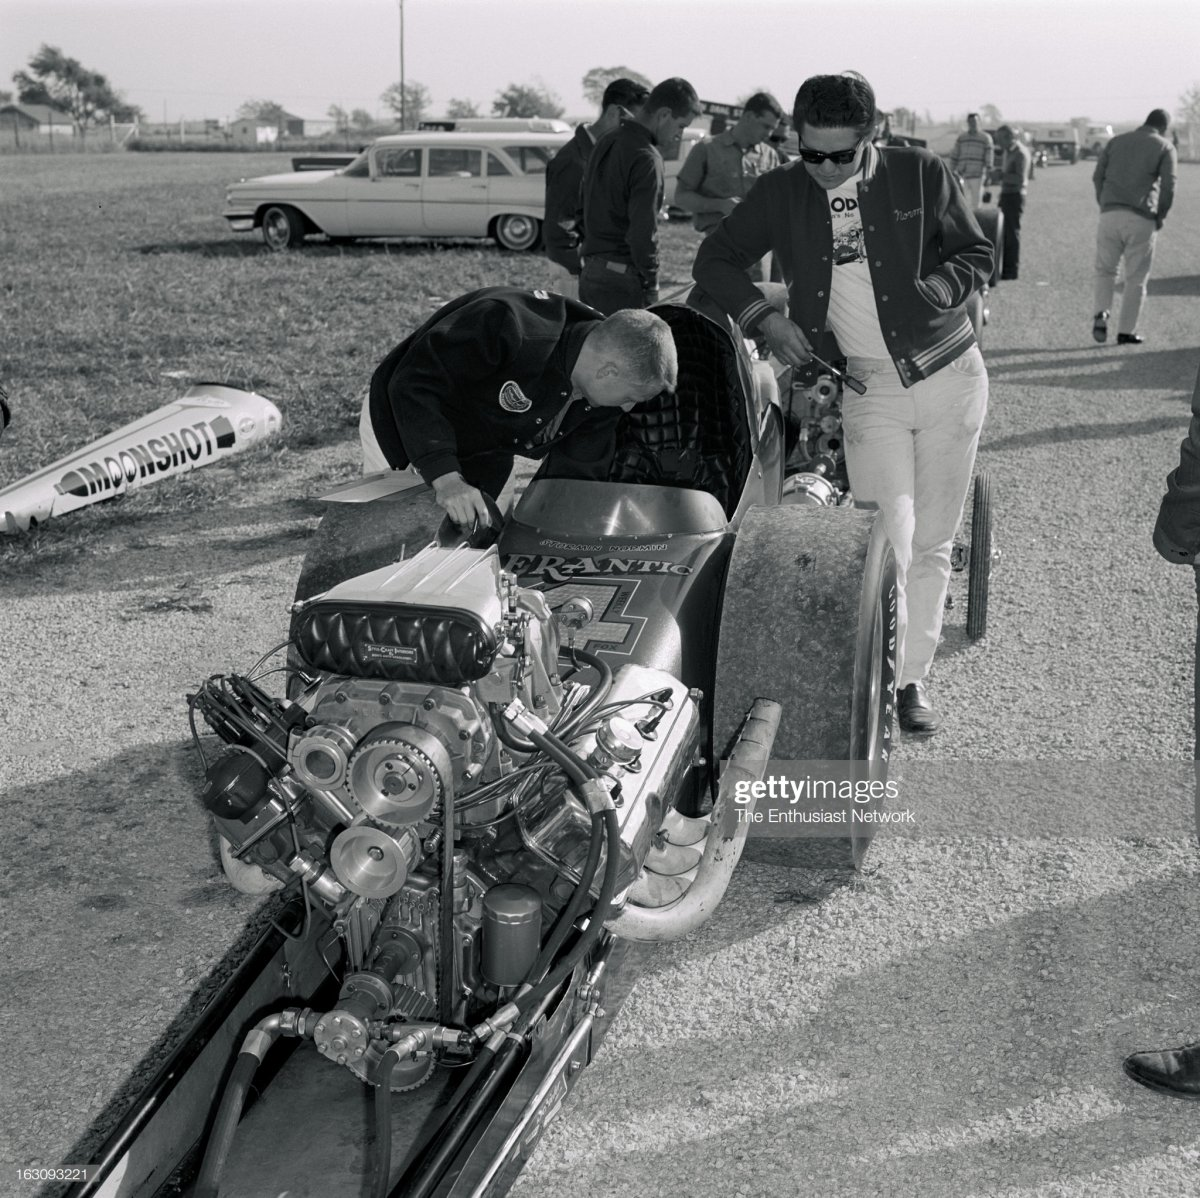 1965 NHRA World Champ.jpg